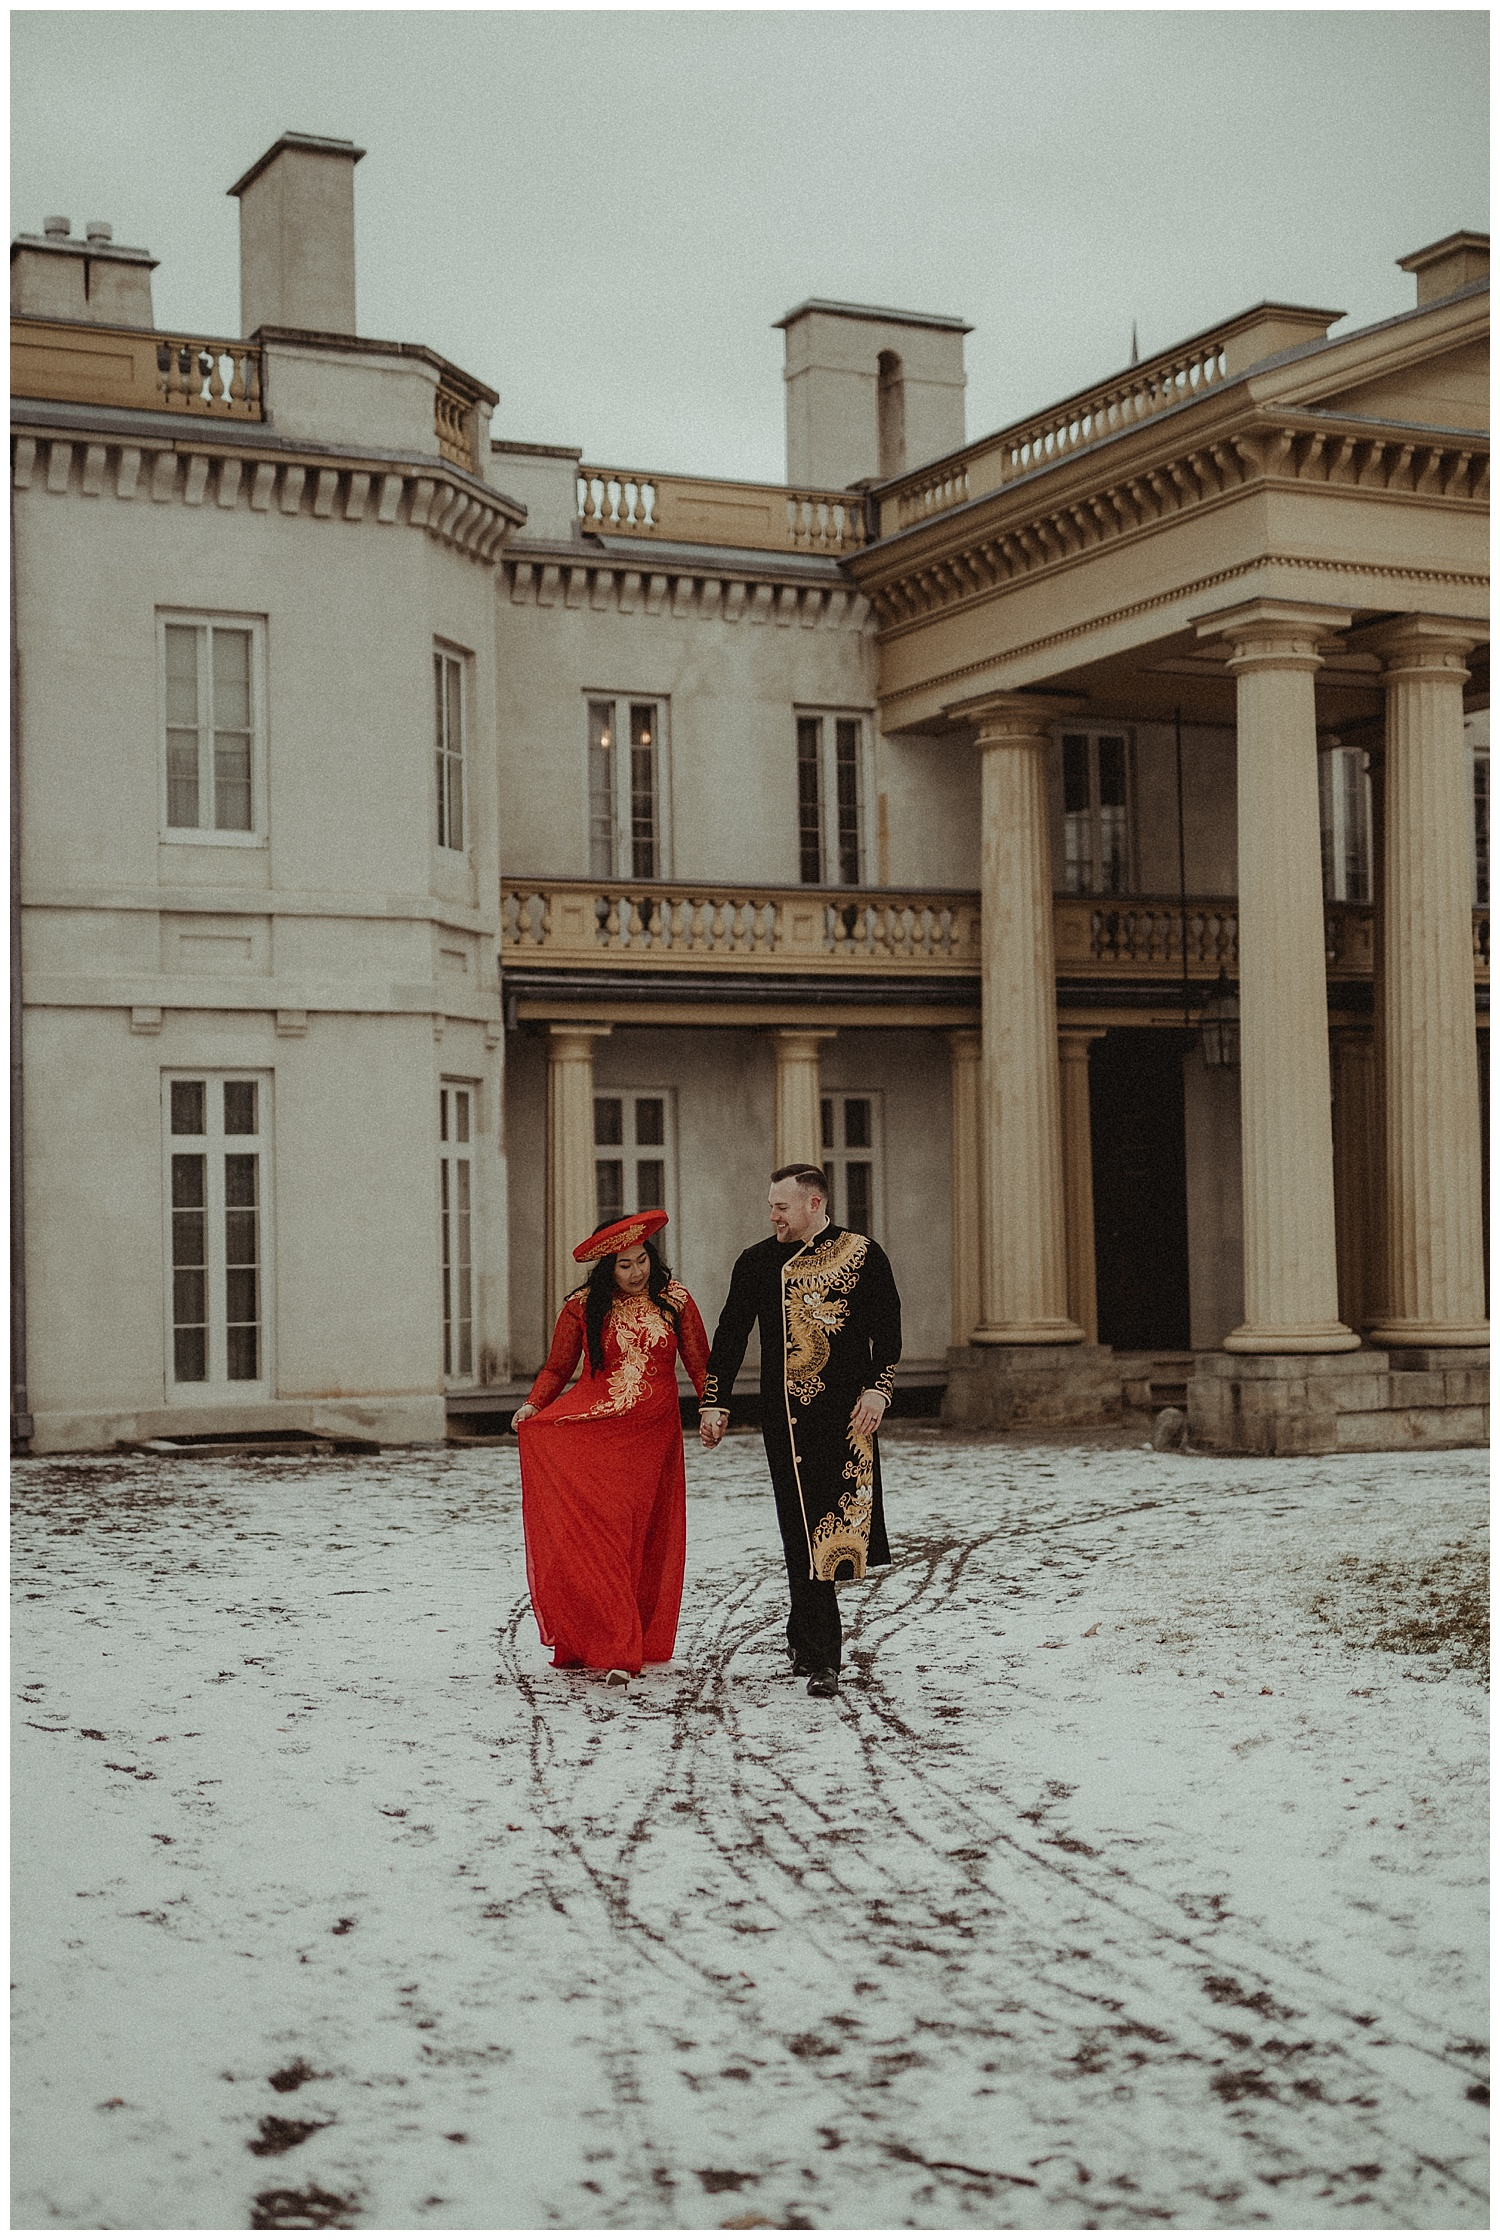 Katie Marie Photography | Hamilton Ontario Wedding Photographer | Hamilton Engagement Session | HamOnt | Vietnamese Engagement Session | Traditional Outfit Engagement Session | Dundurn Castle_0037.jpg